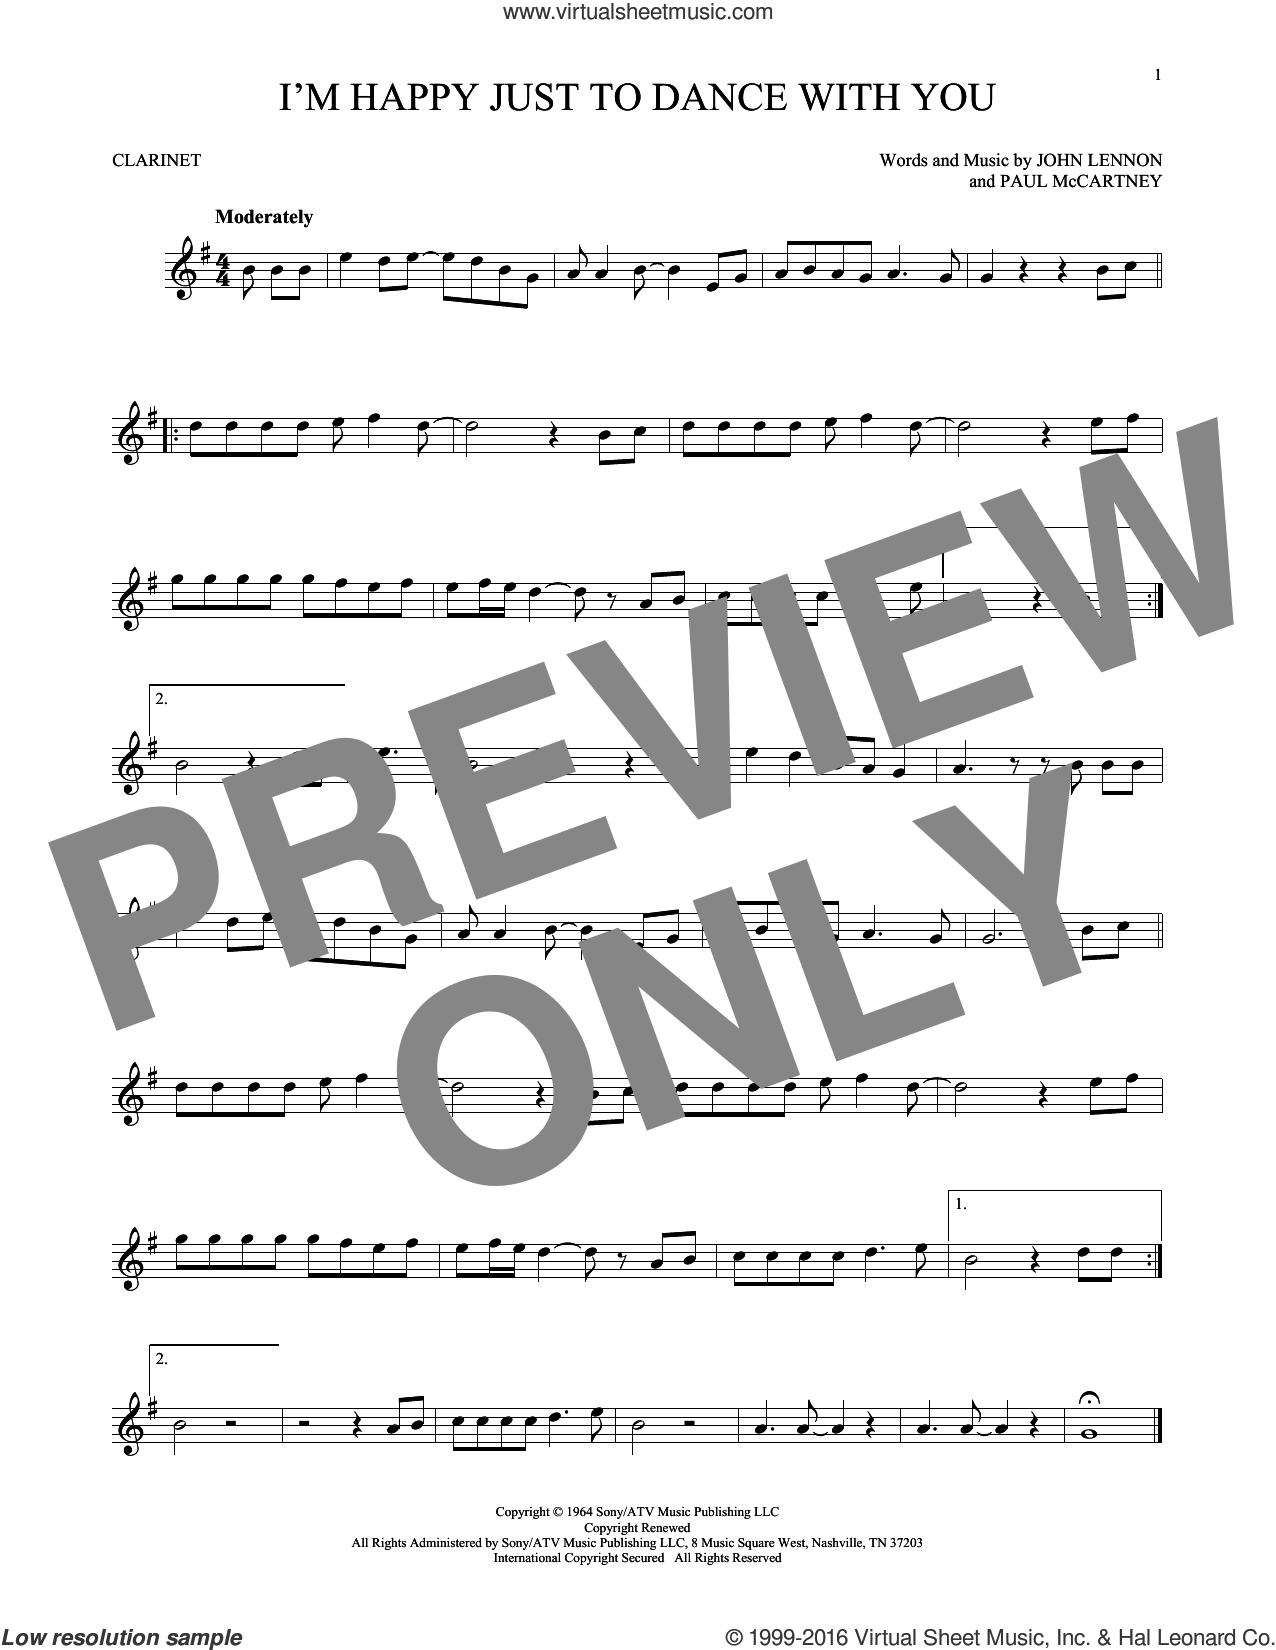 I'm Happy Just To Dance With You sheet music for clarinet solo by The Beatles, John Lennon and Paul McCartney, intermediate skill level